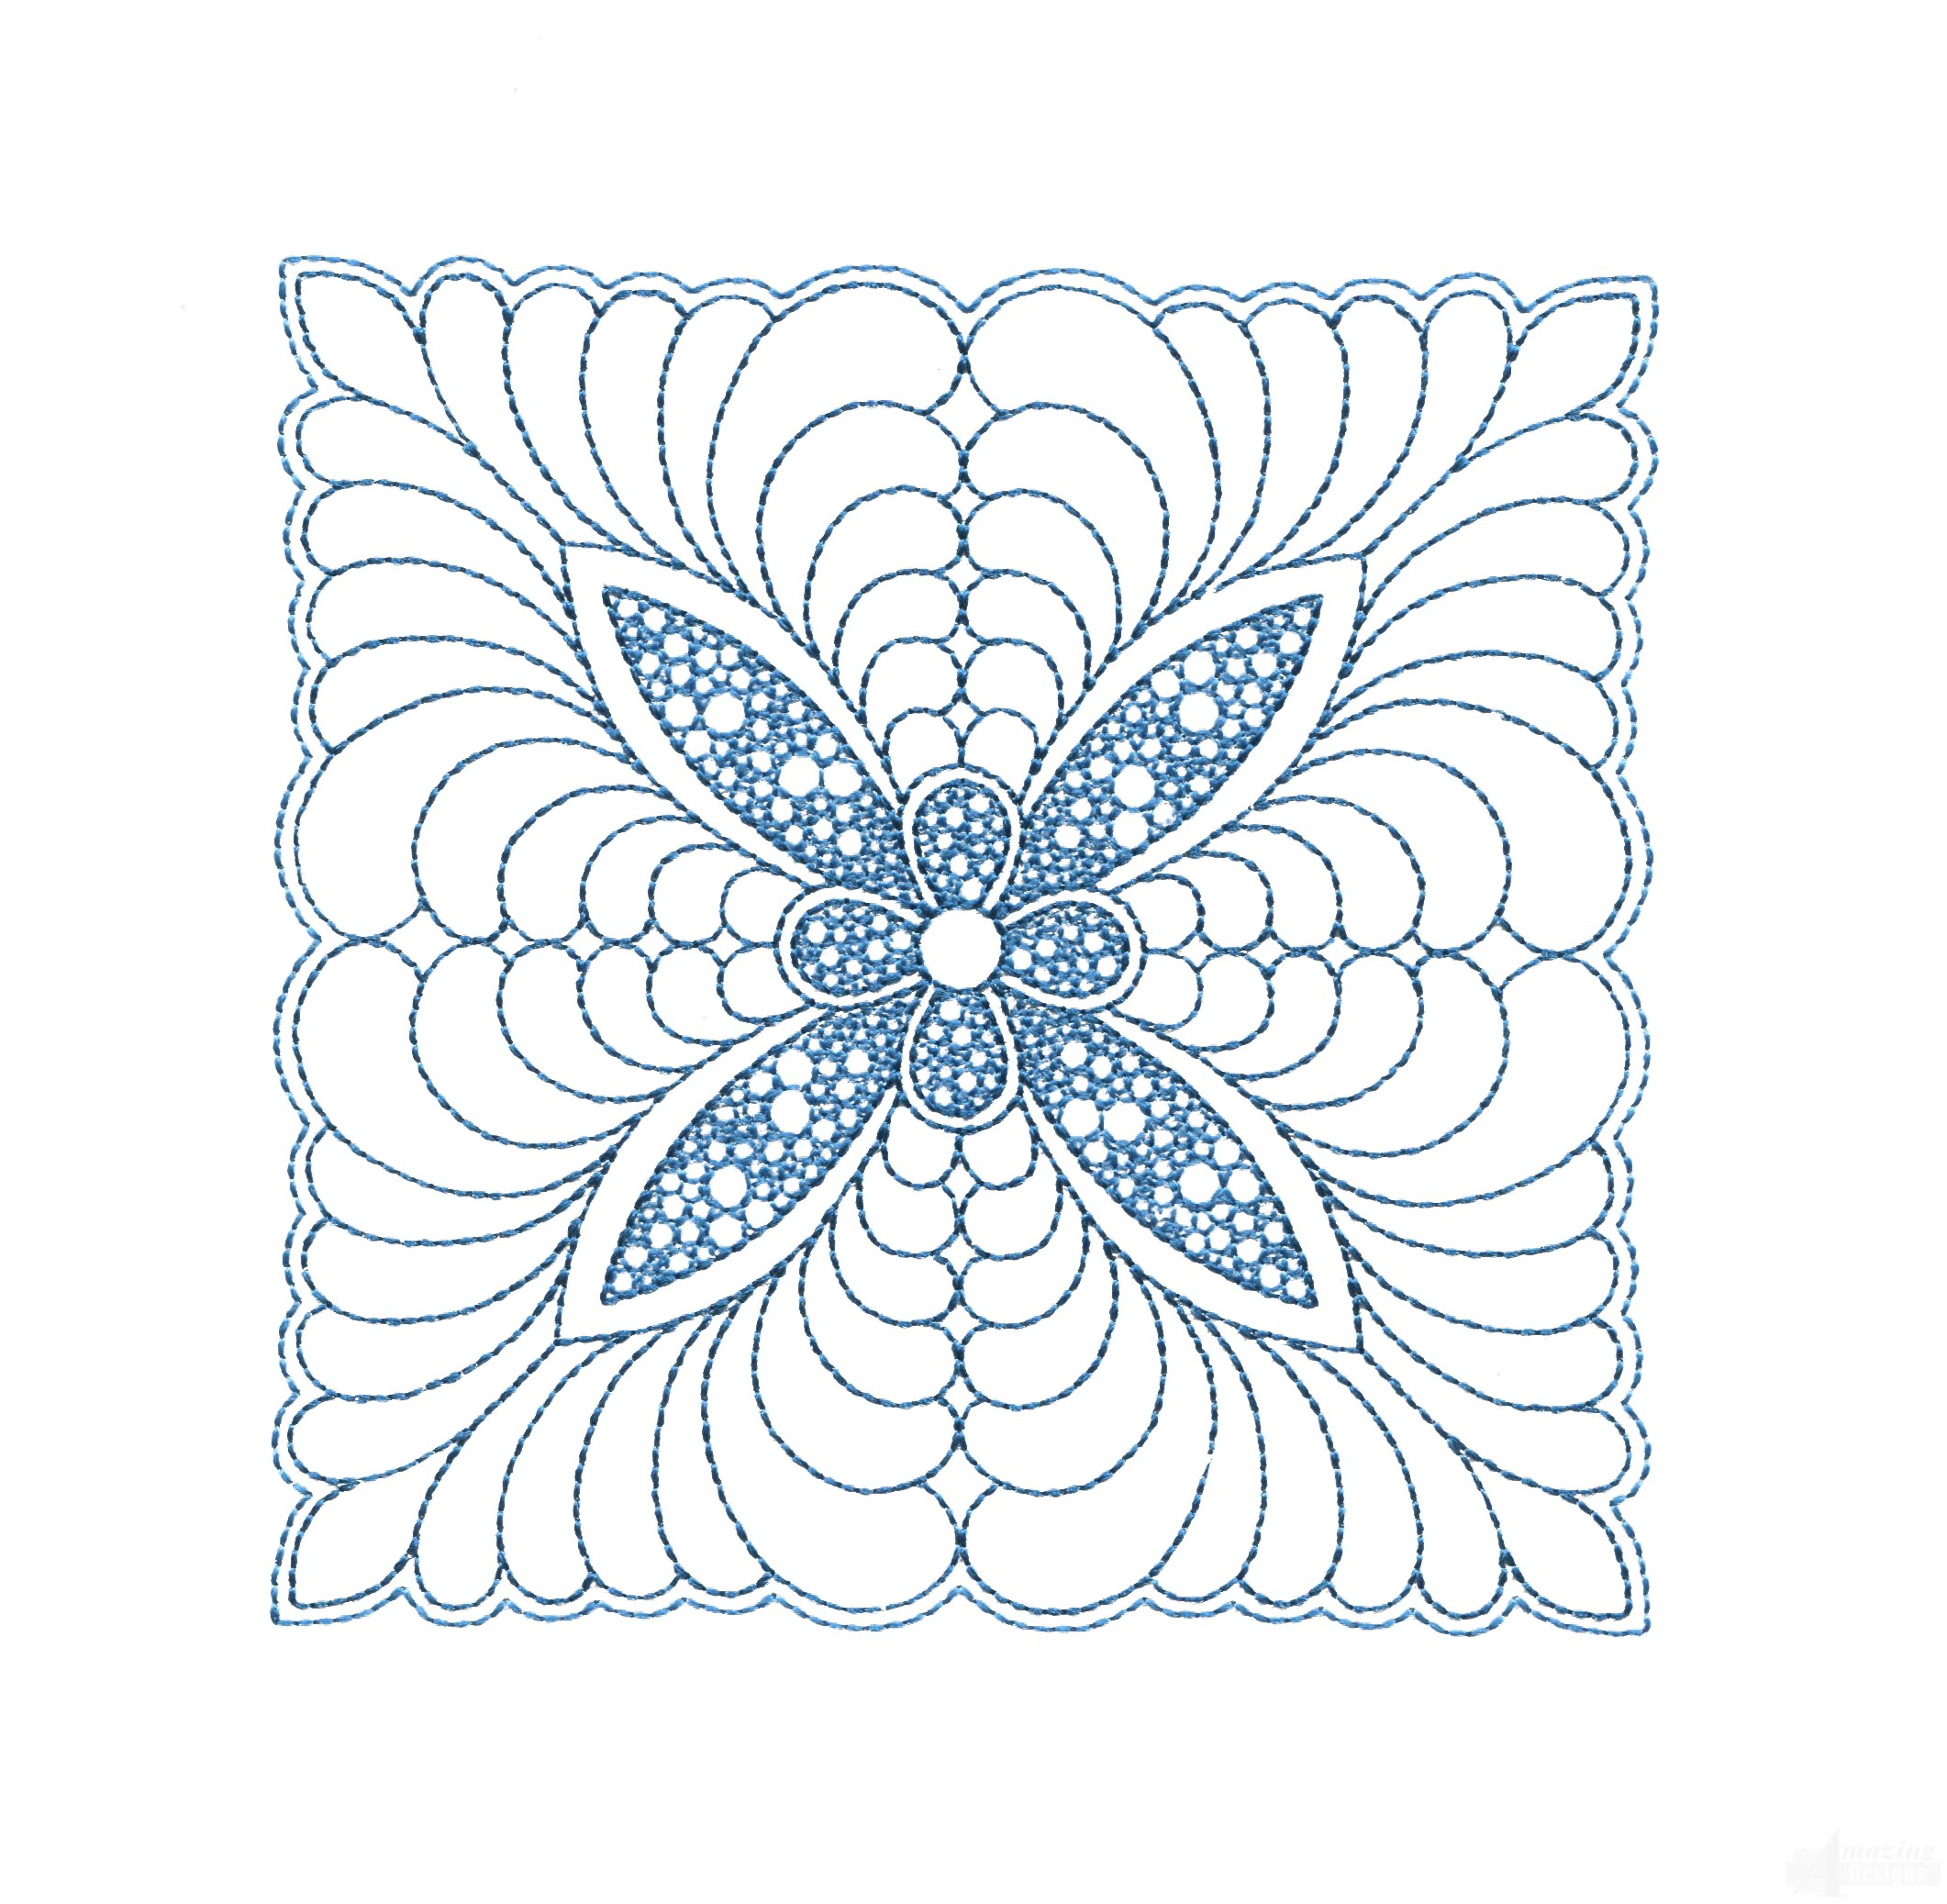 Rs quilt motif embroidery design